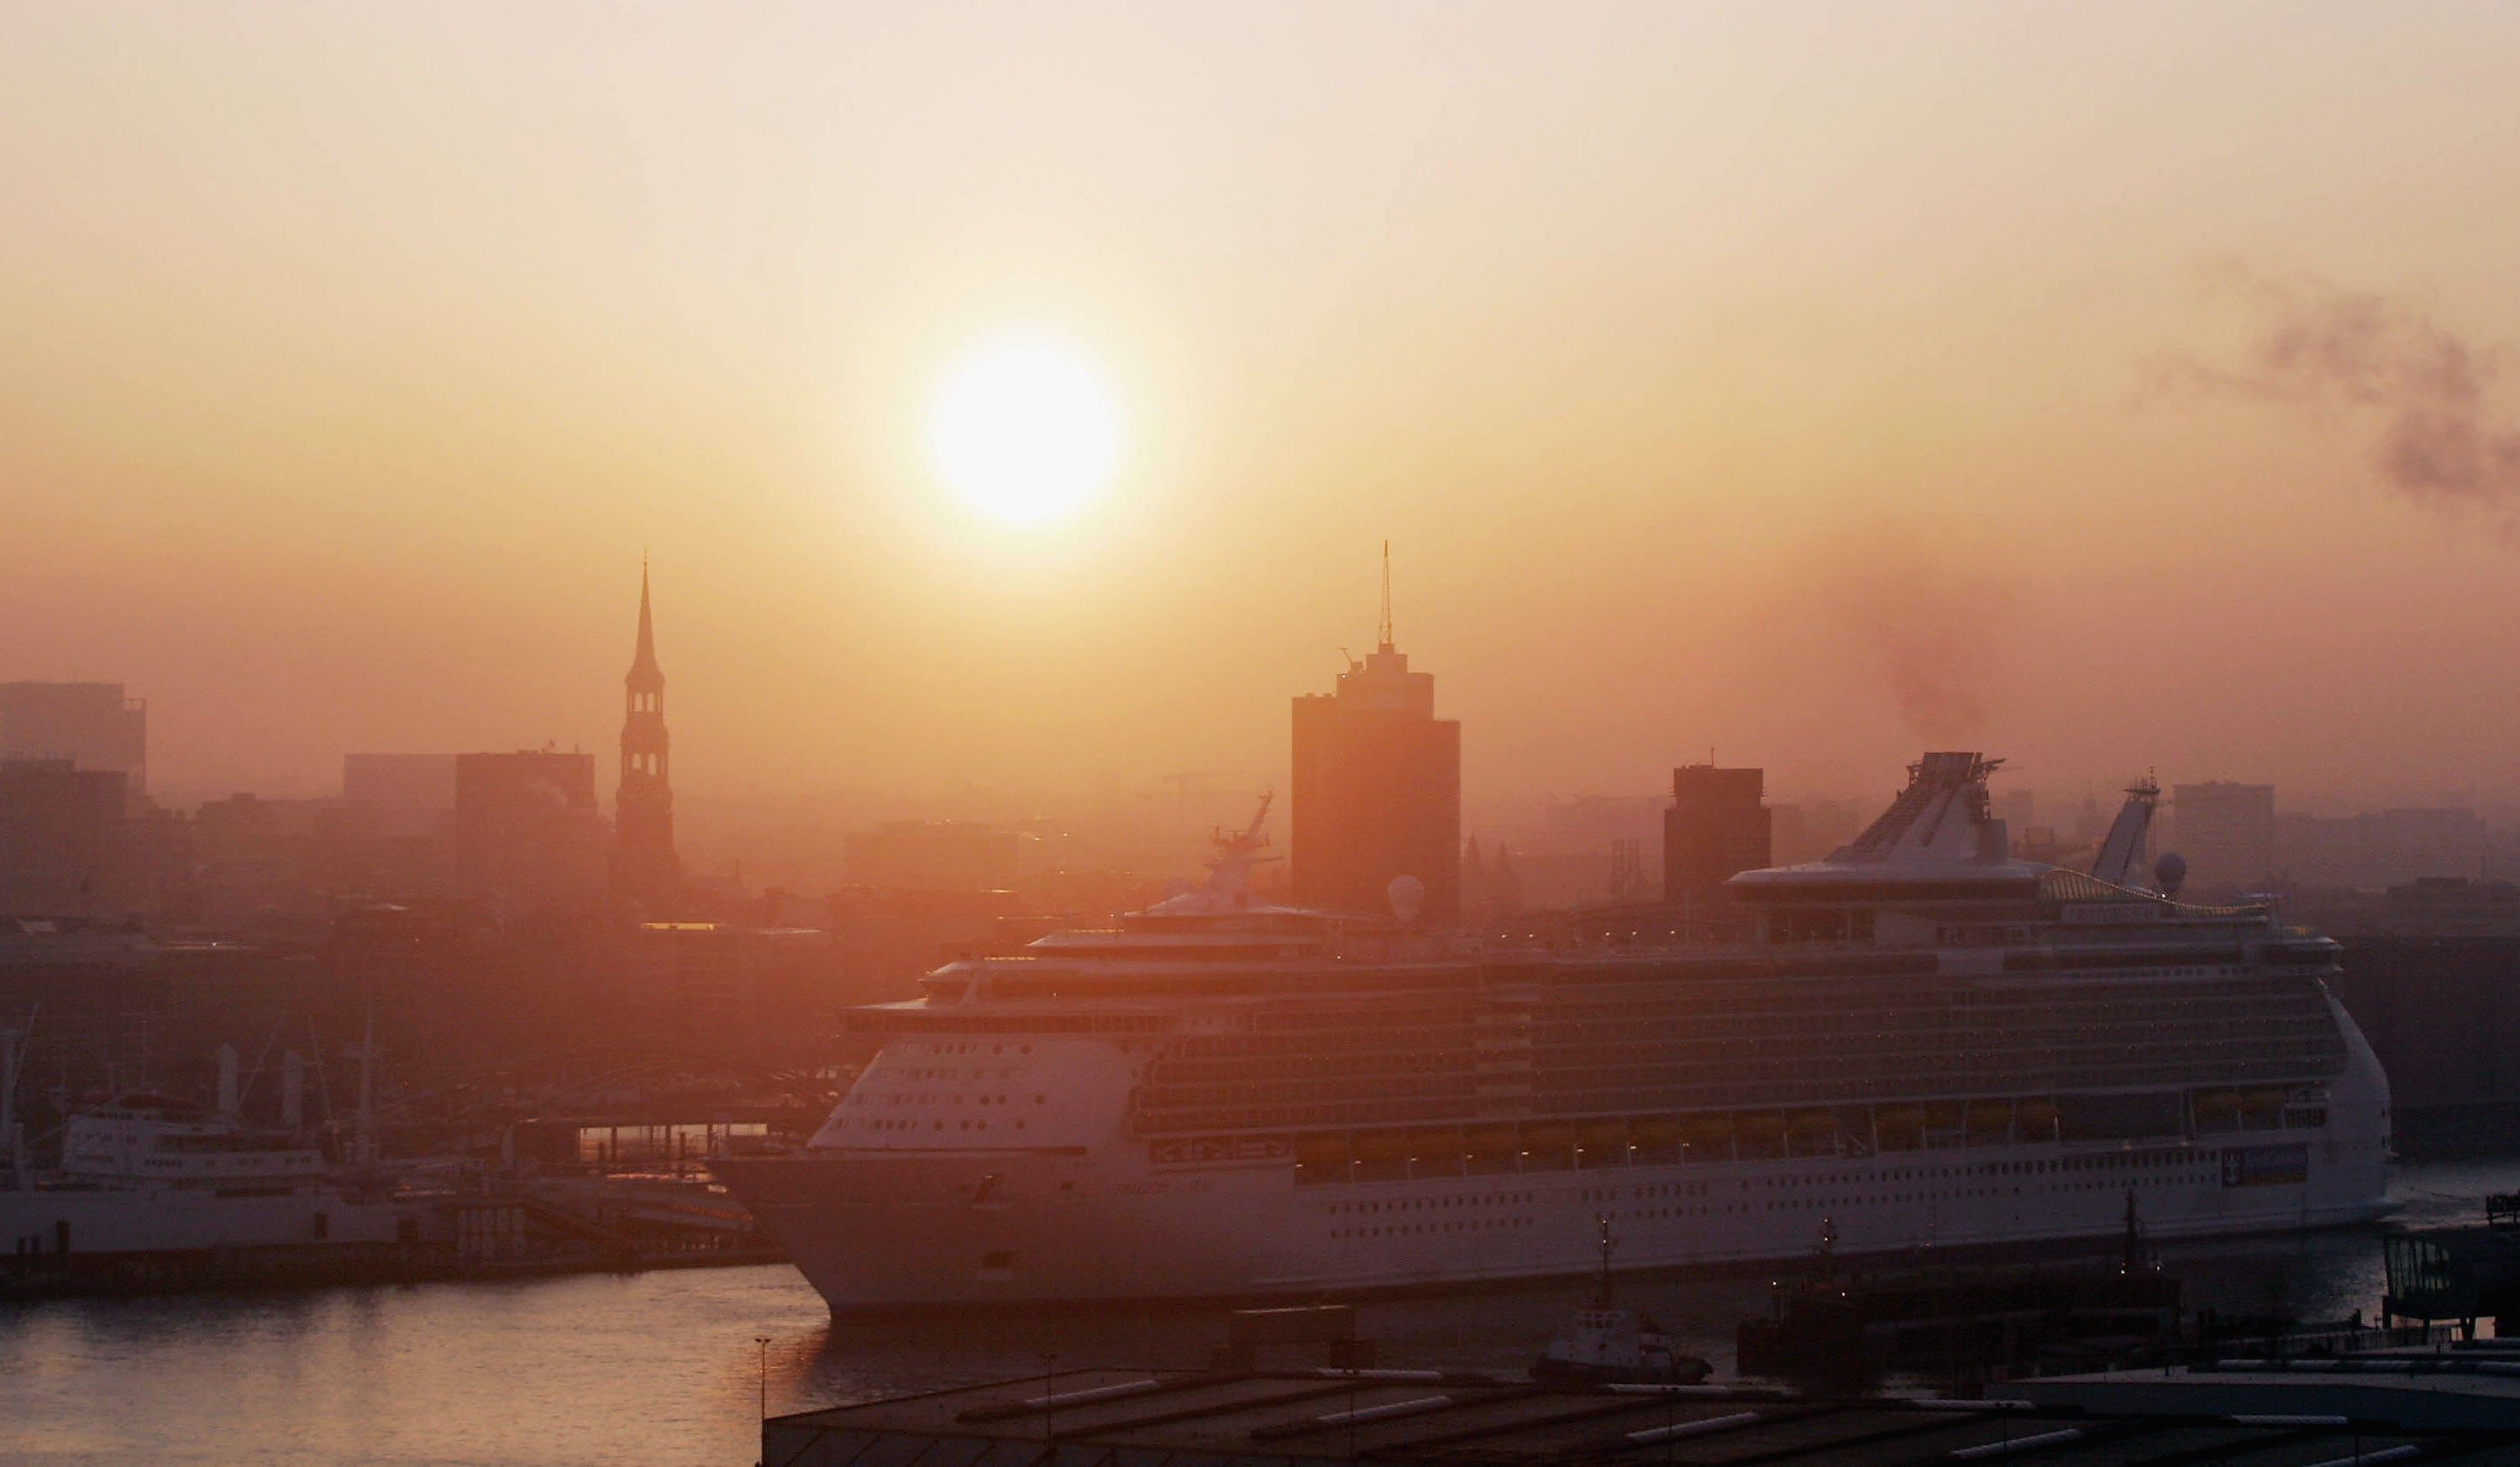 The Royal Caribbean's Freedom of the Seas cruise ship enters the docks of the Blohm & Voss shipyard